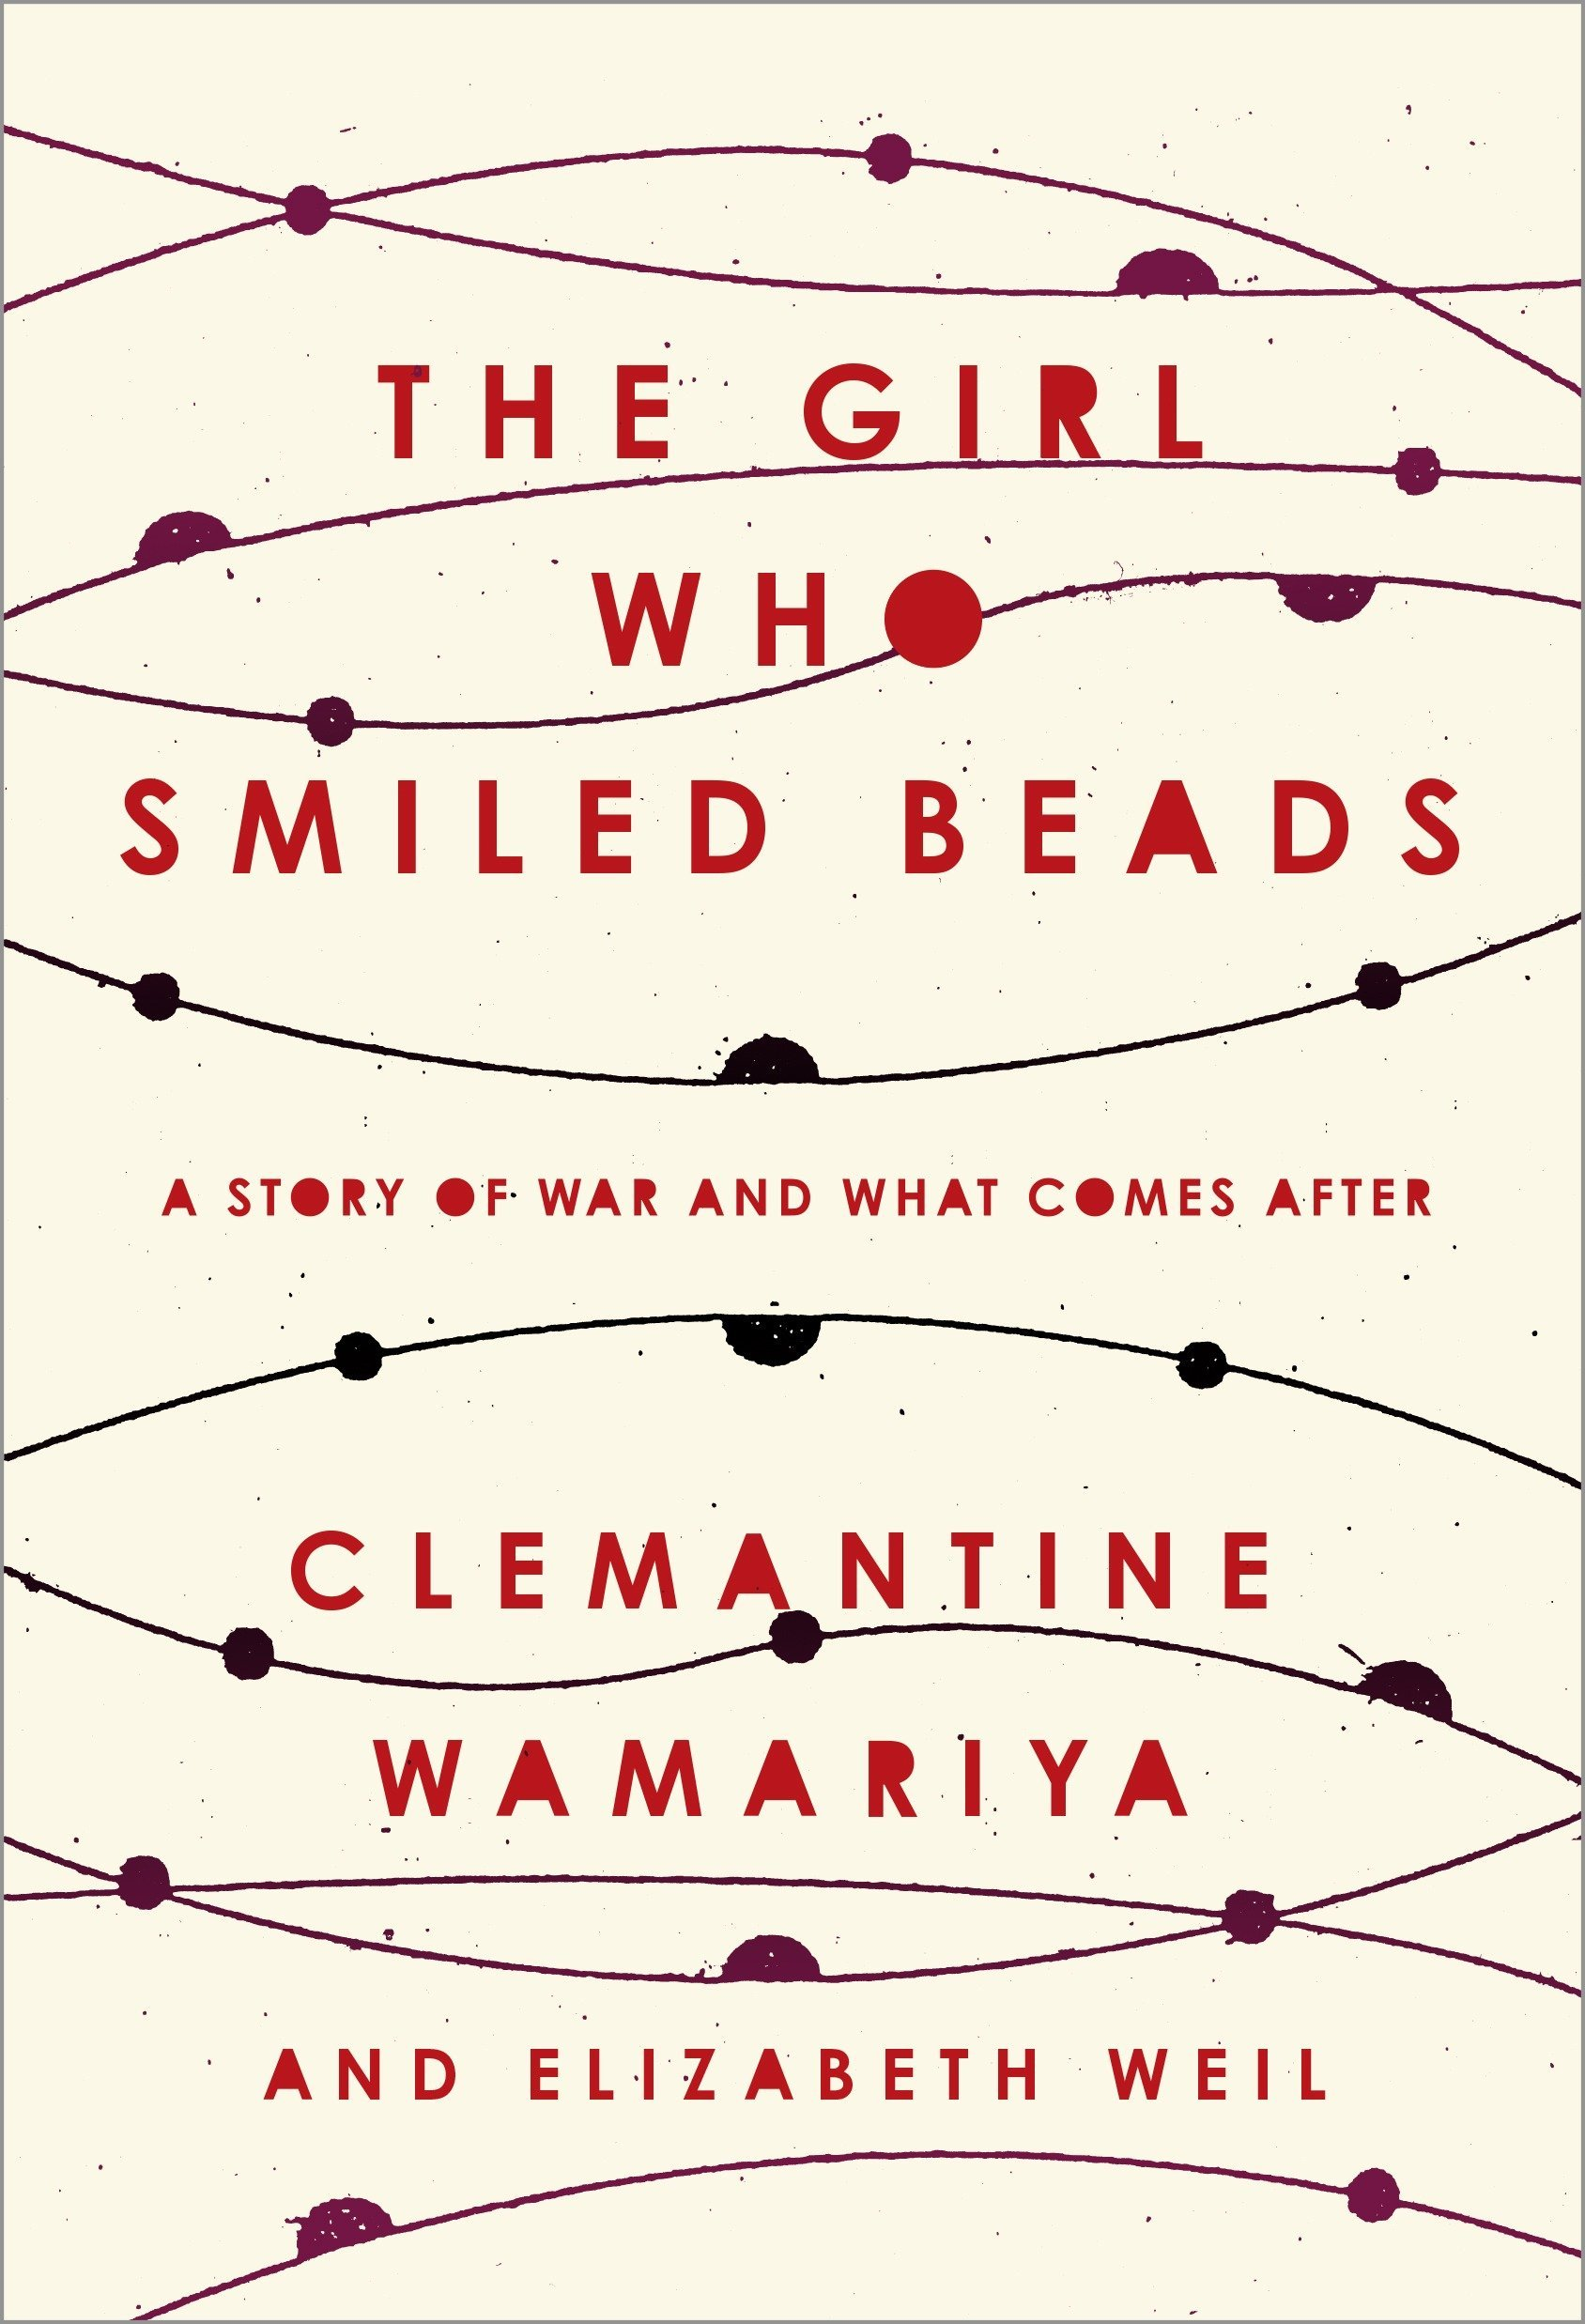 Can One Person Make A Difference Essay The Girl Who Smiled Beads A Story Of War And What Comes After Clemantine  Wamariya Elizabeth Weil  Amazoncom Books Essay On New York also Writing A Proposal Essay The Girl Who Smiled Beads A Story Of War And What Comes After  Refutation Essay Topics